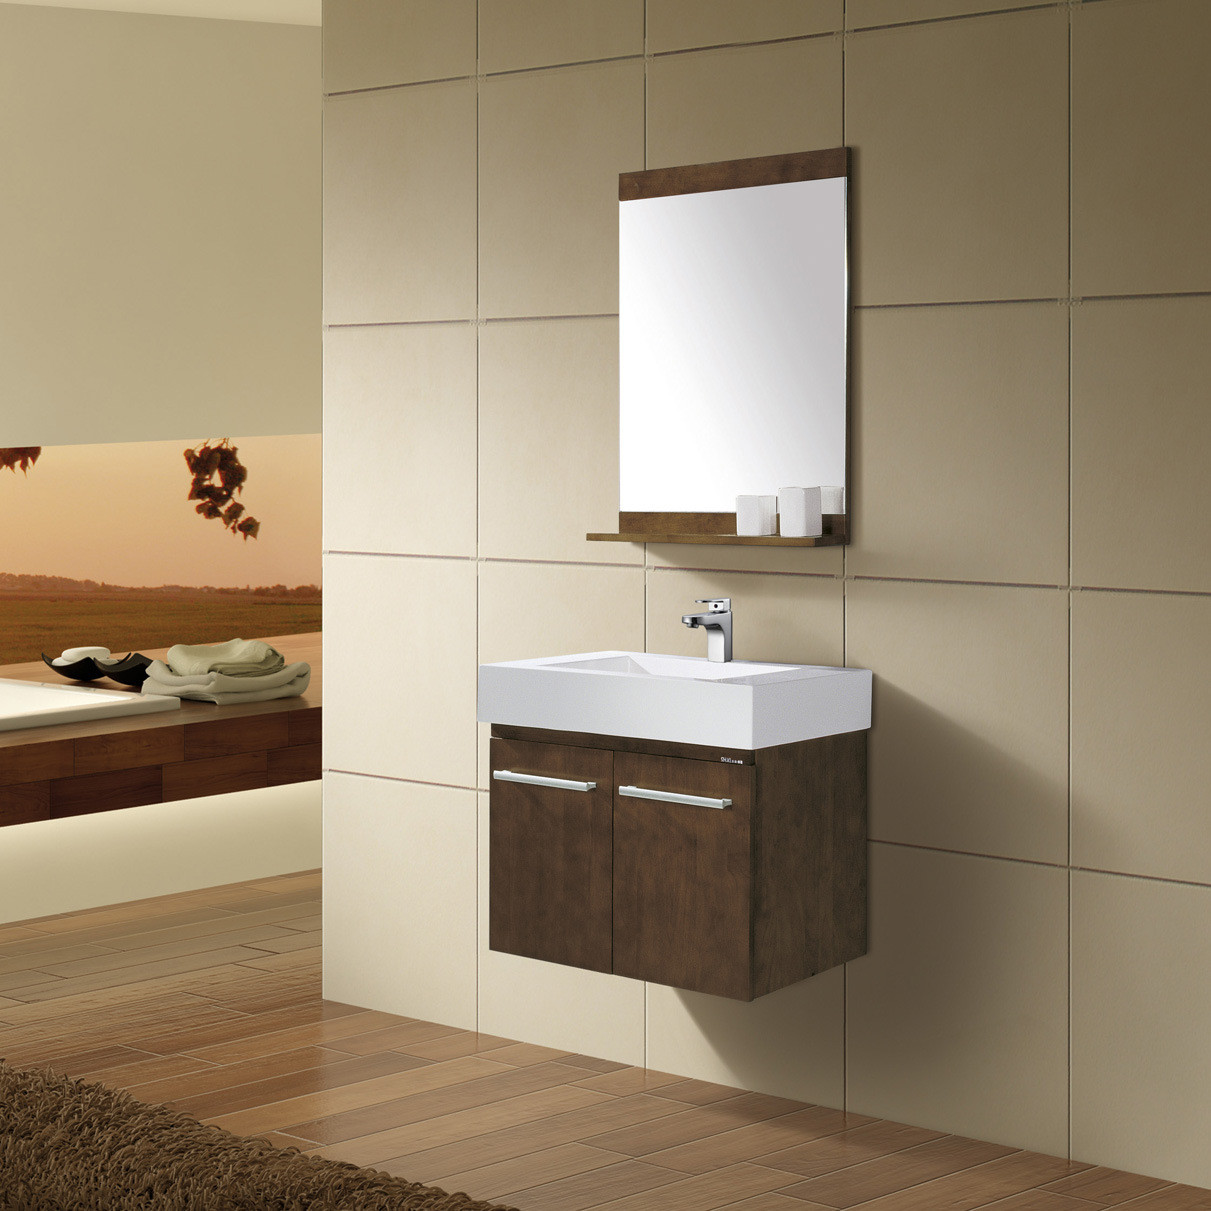 Best ideas about Wall Mounted Bathroom Cabinets . Save or Pin BATHROOM CABINET WALL Now.